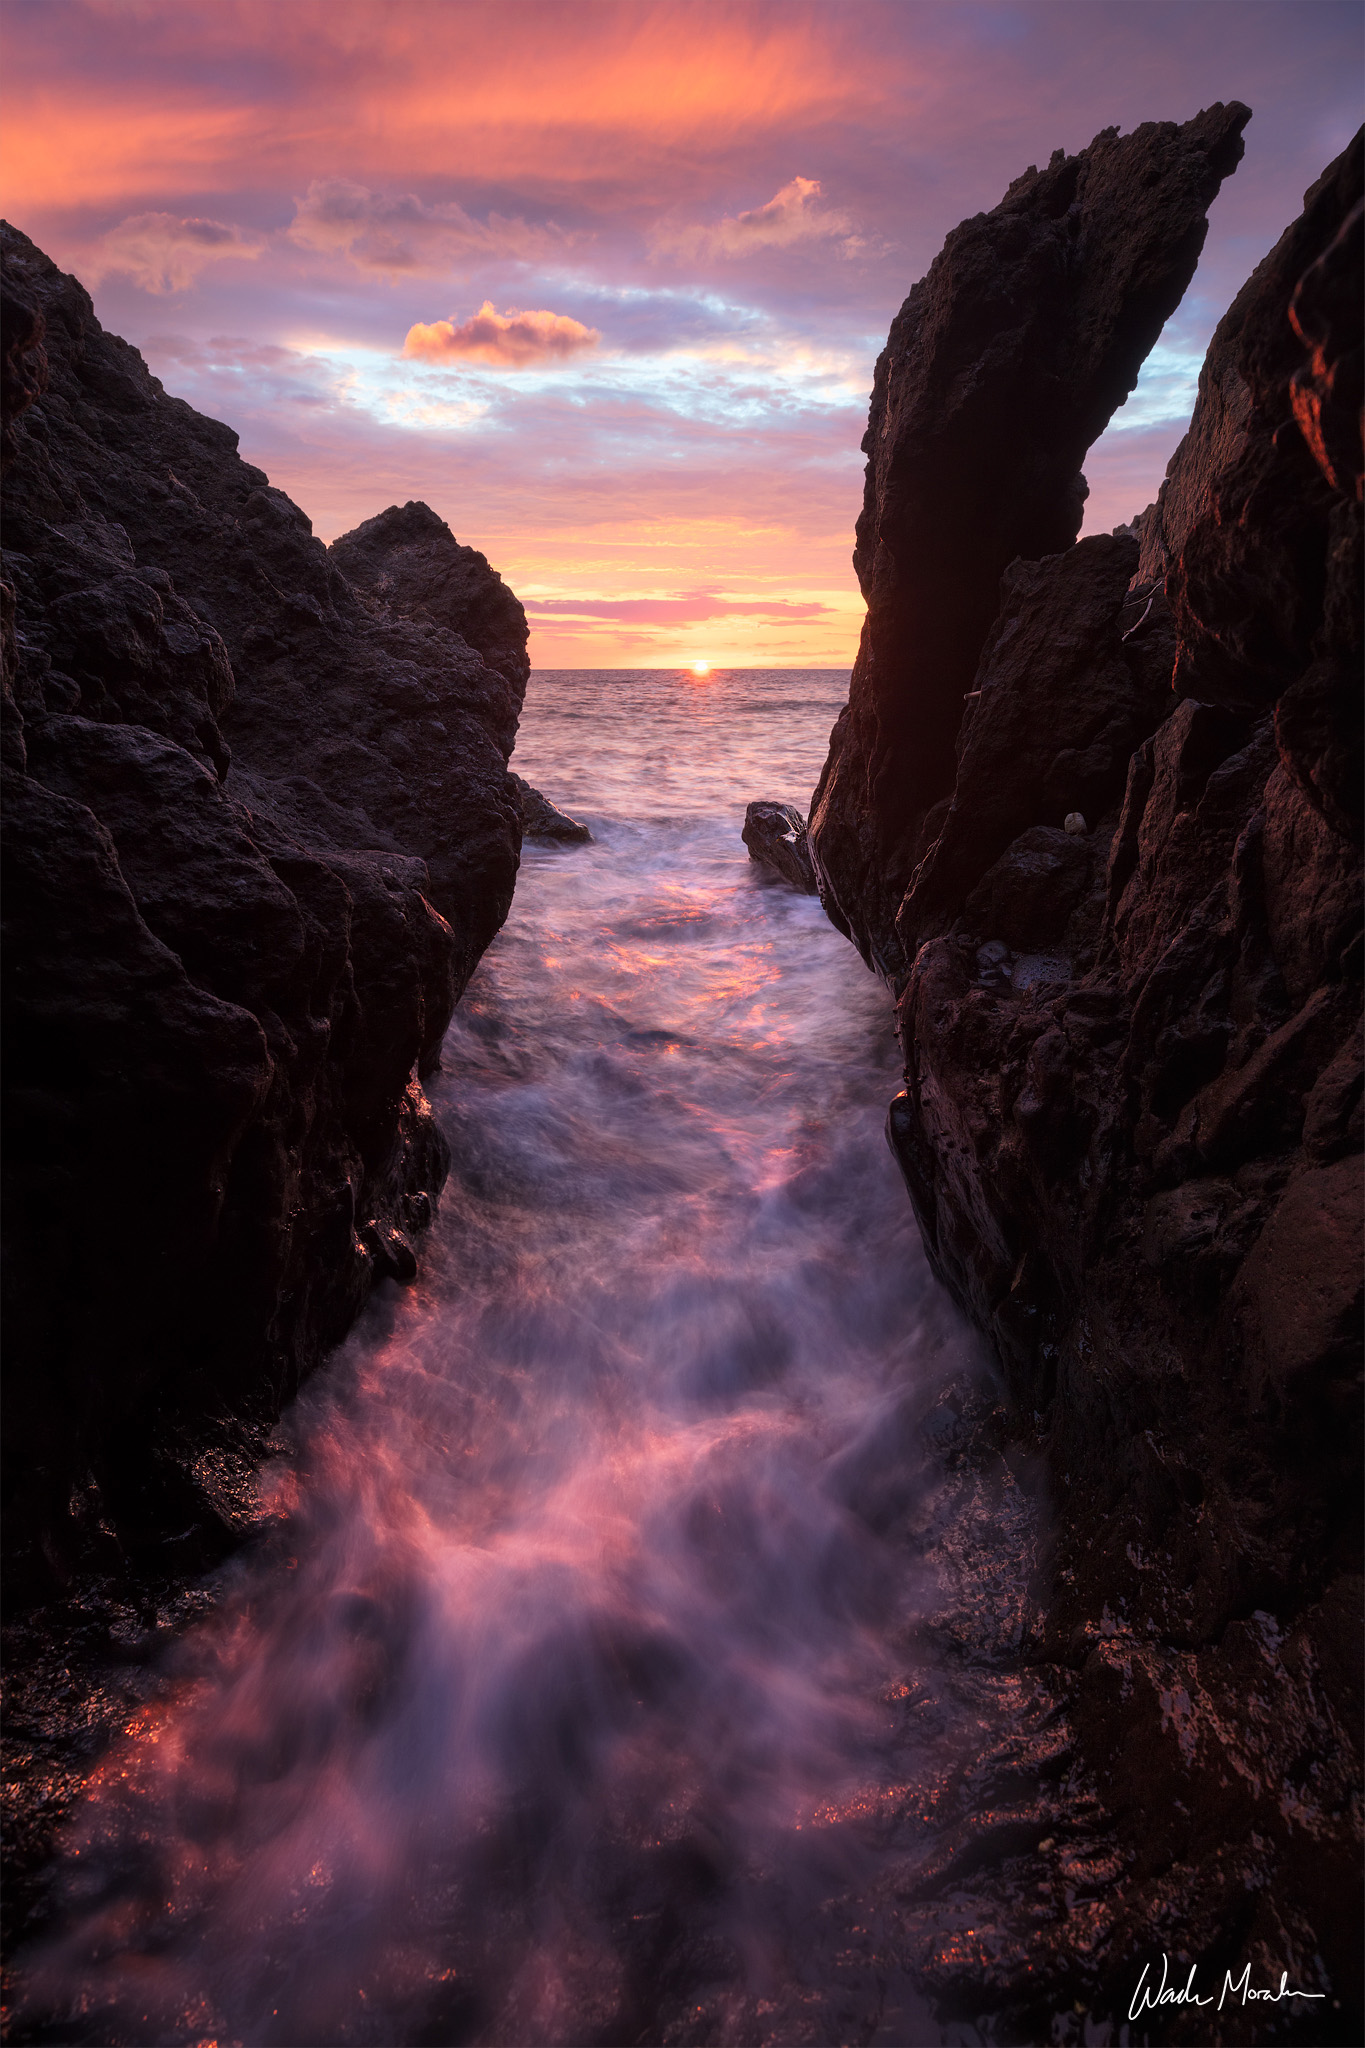 A crevice of eroded lava rock continuously channels water onto the beach and back out into the sea. During this sunset over the...